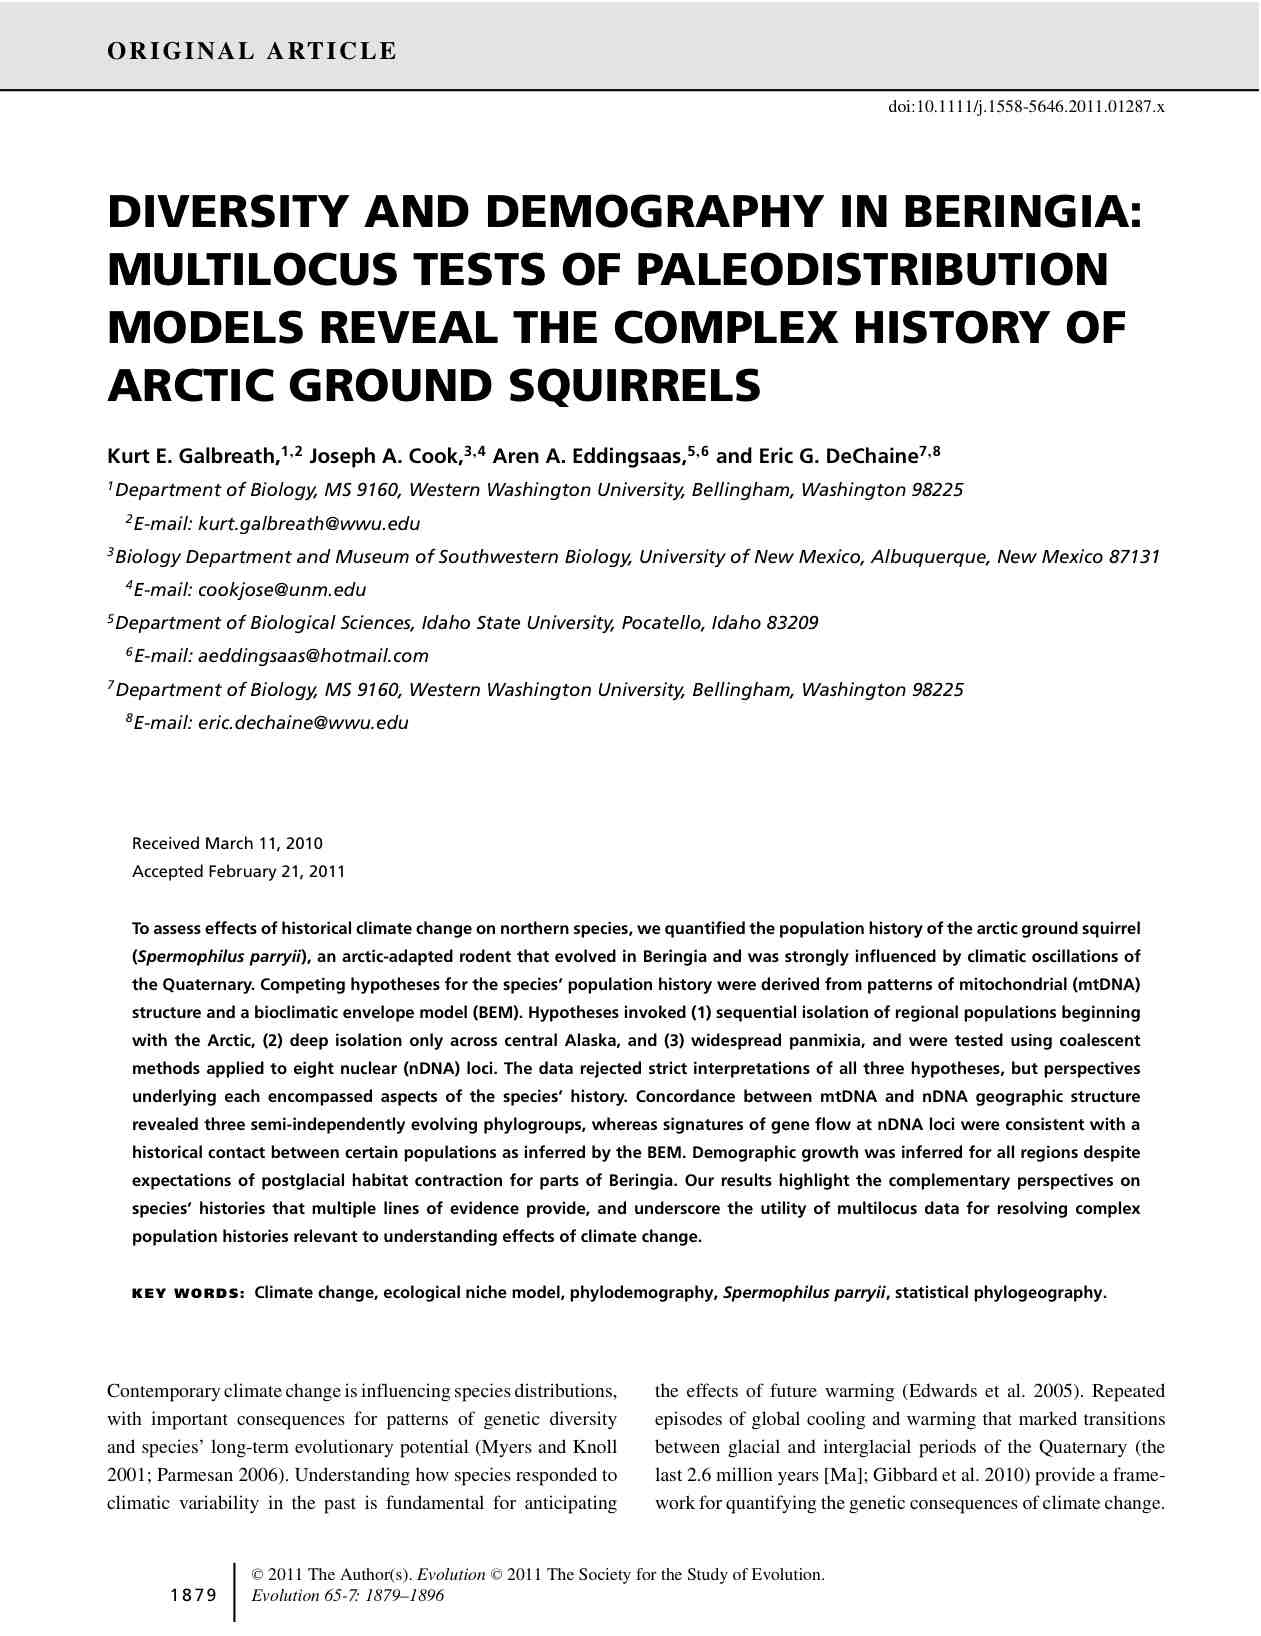 Galbreath_etal_2011_Diversity_and_demography_in_Beringia_multilocus_test_reveal_complex_history_of_arctic_ground_squirrels.pdf